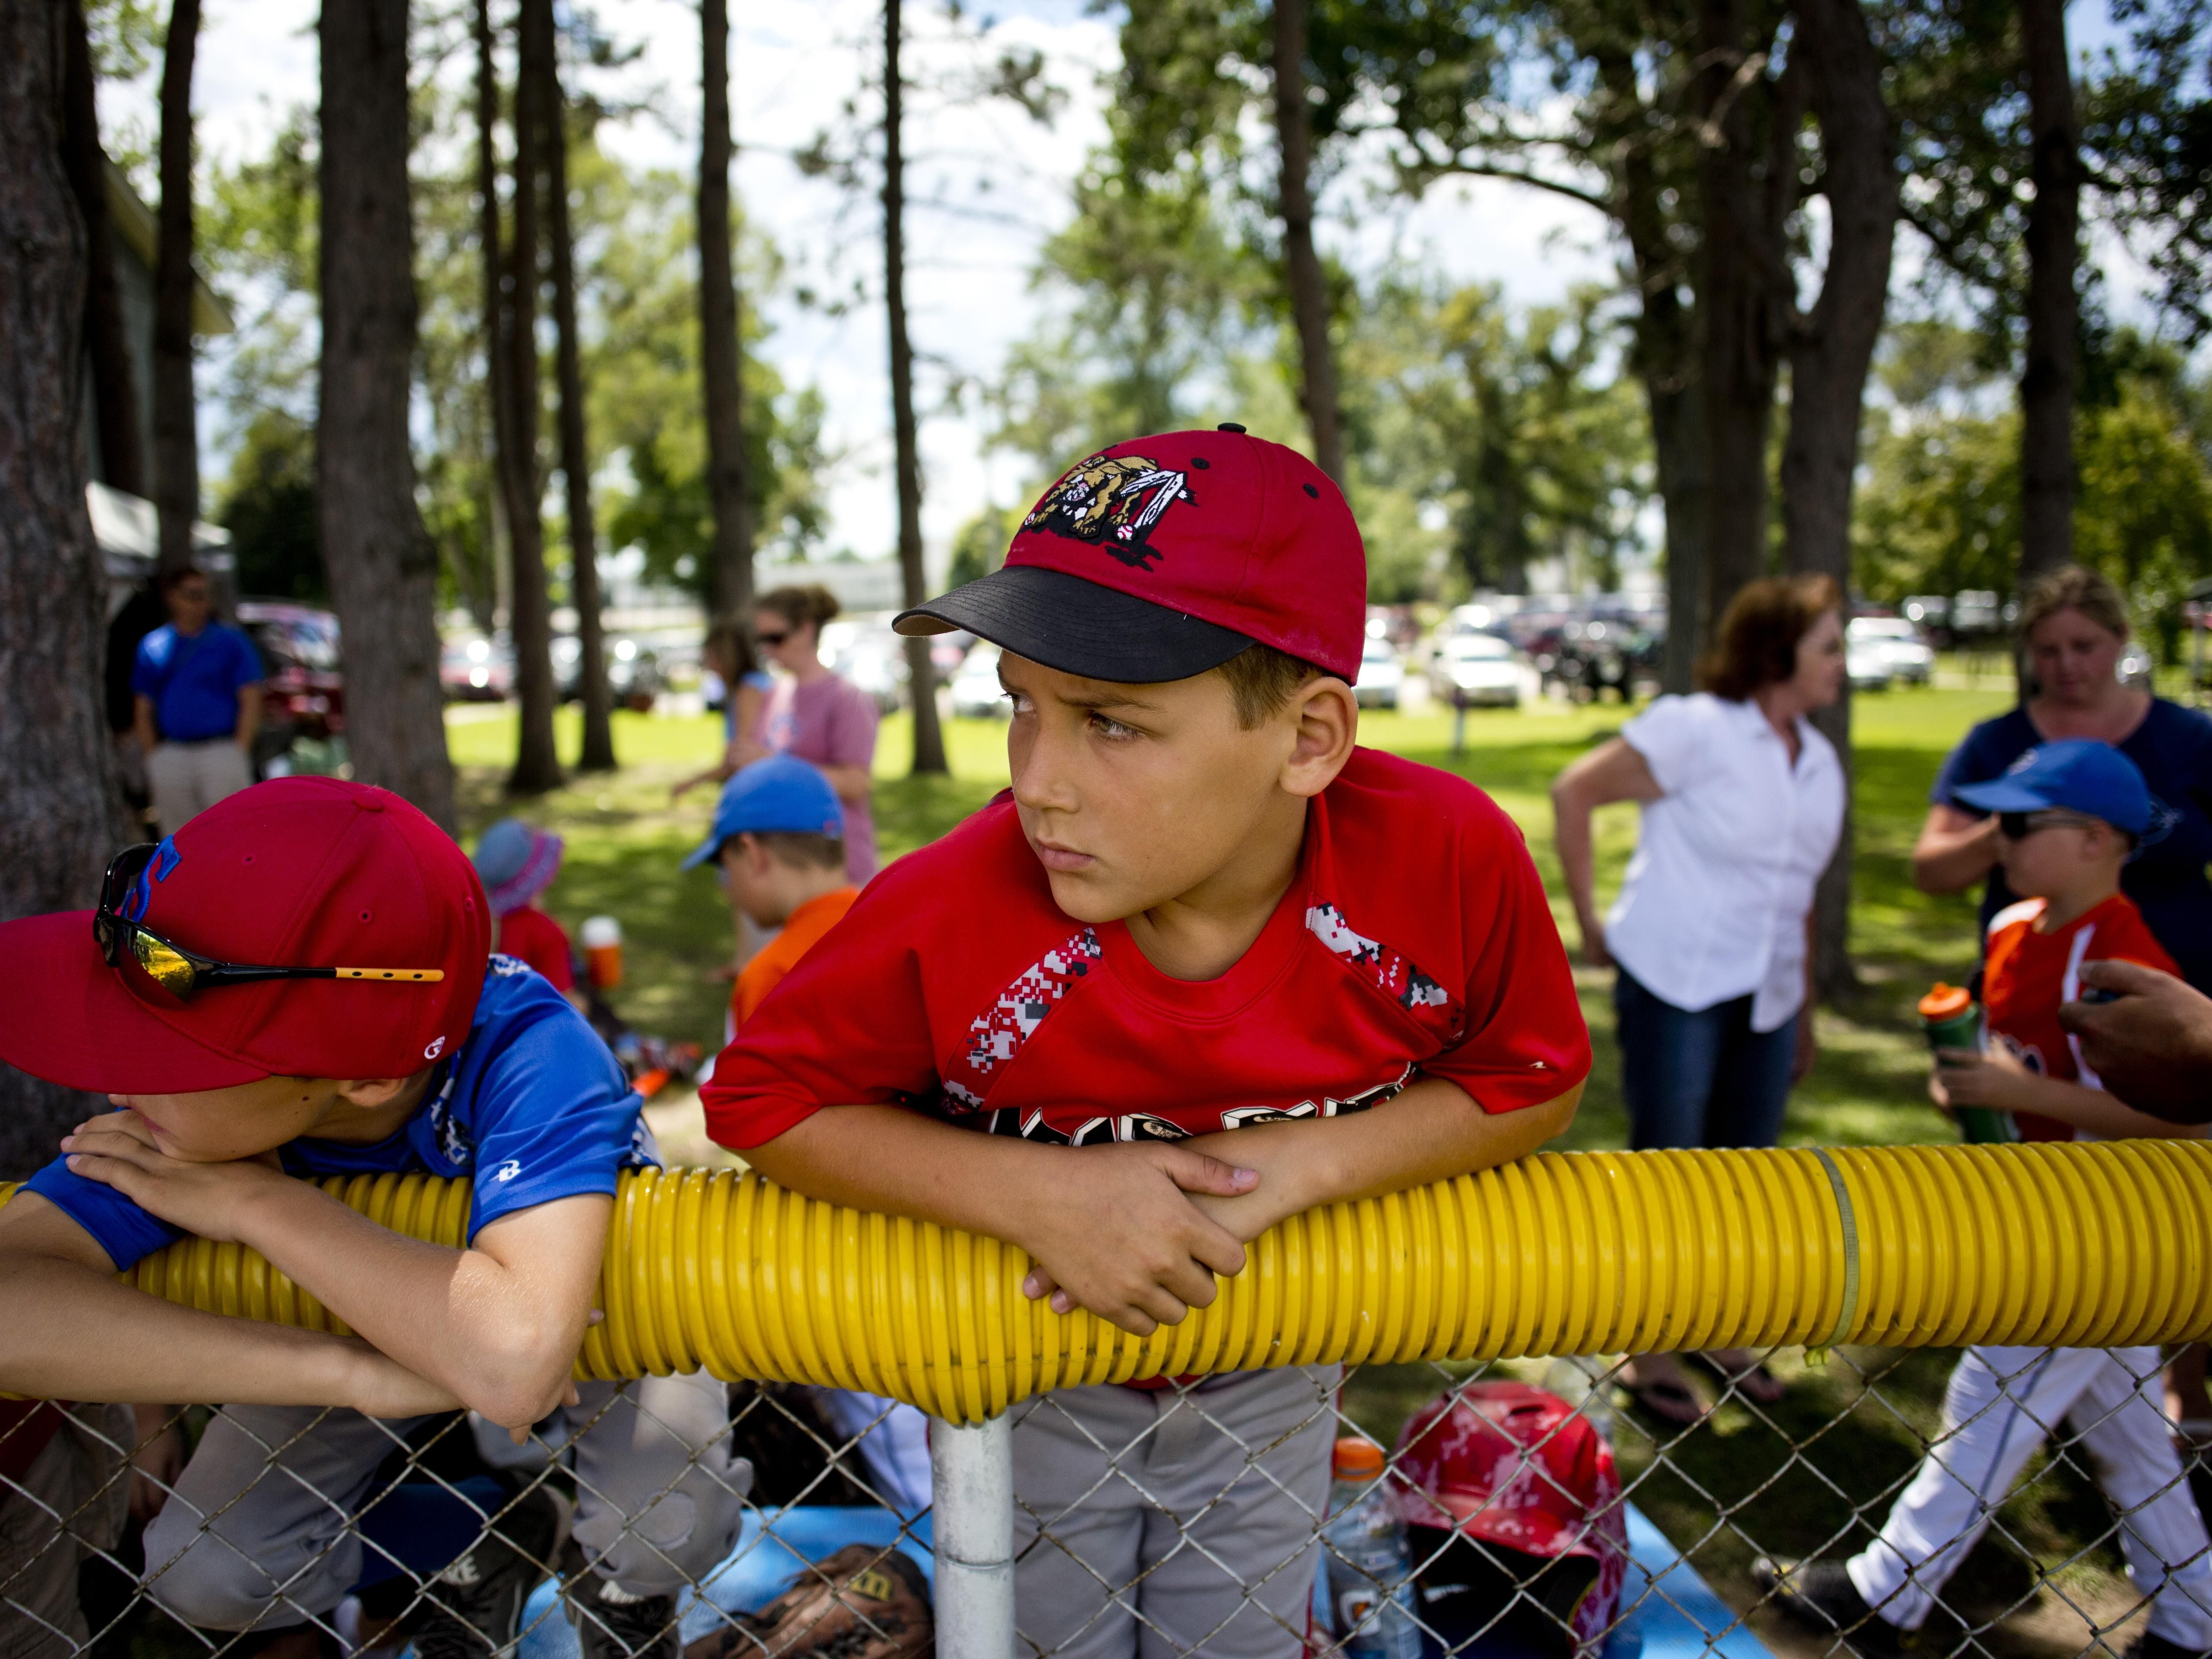 St. Clair player Conner Shurkey, 9, watches from the fence during a Little League skills competition Saturday, August 1, 2015 at Marysville City Park.